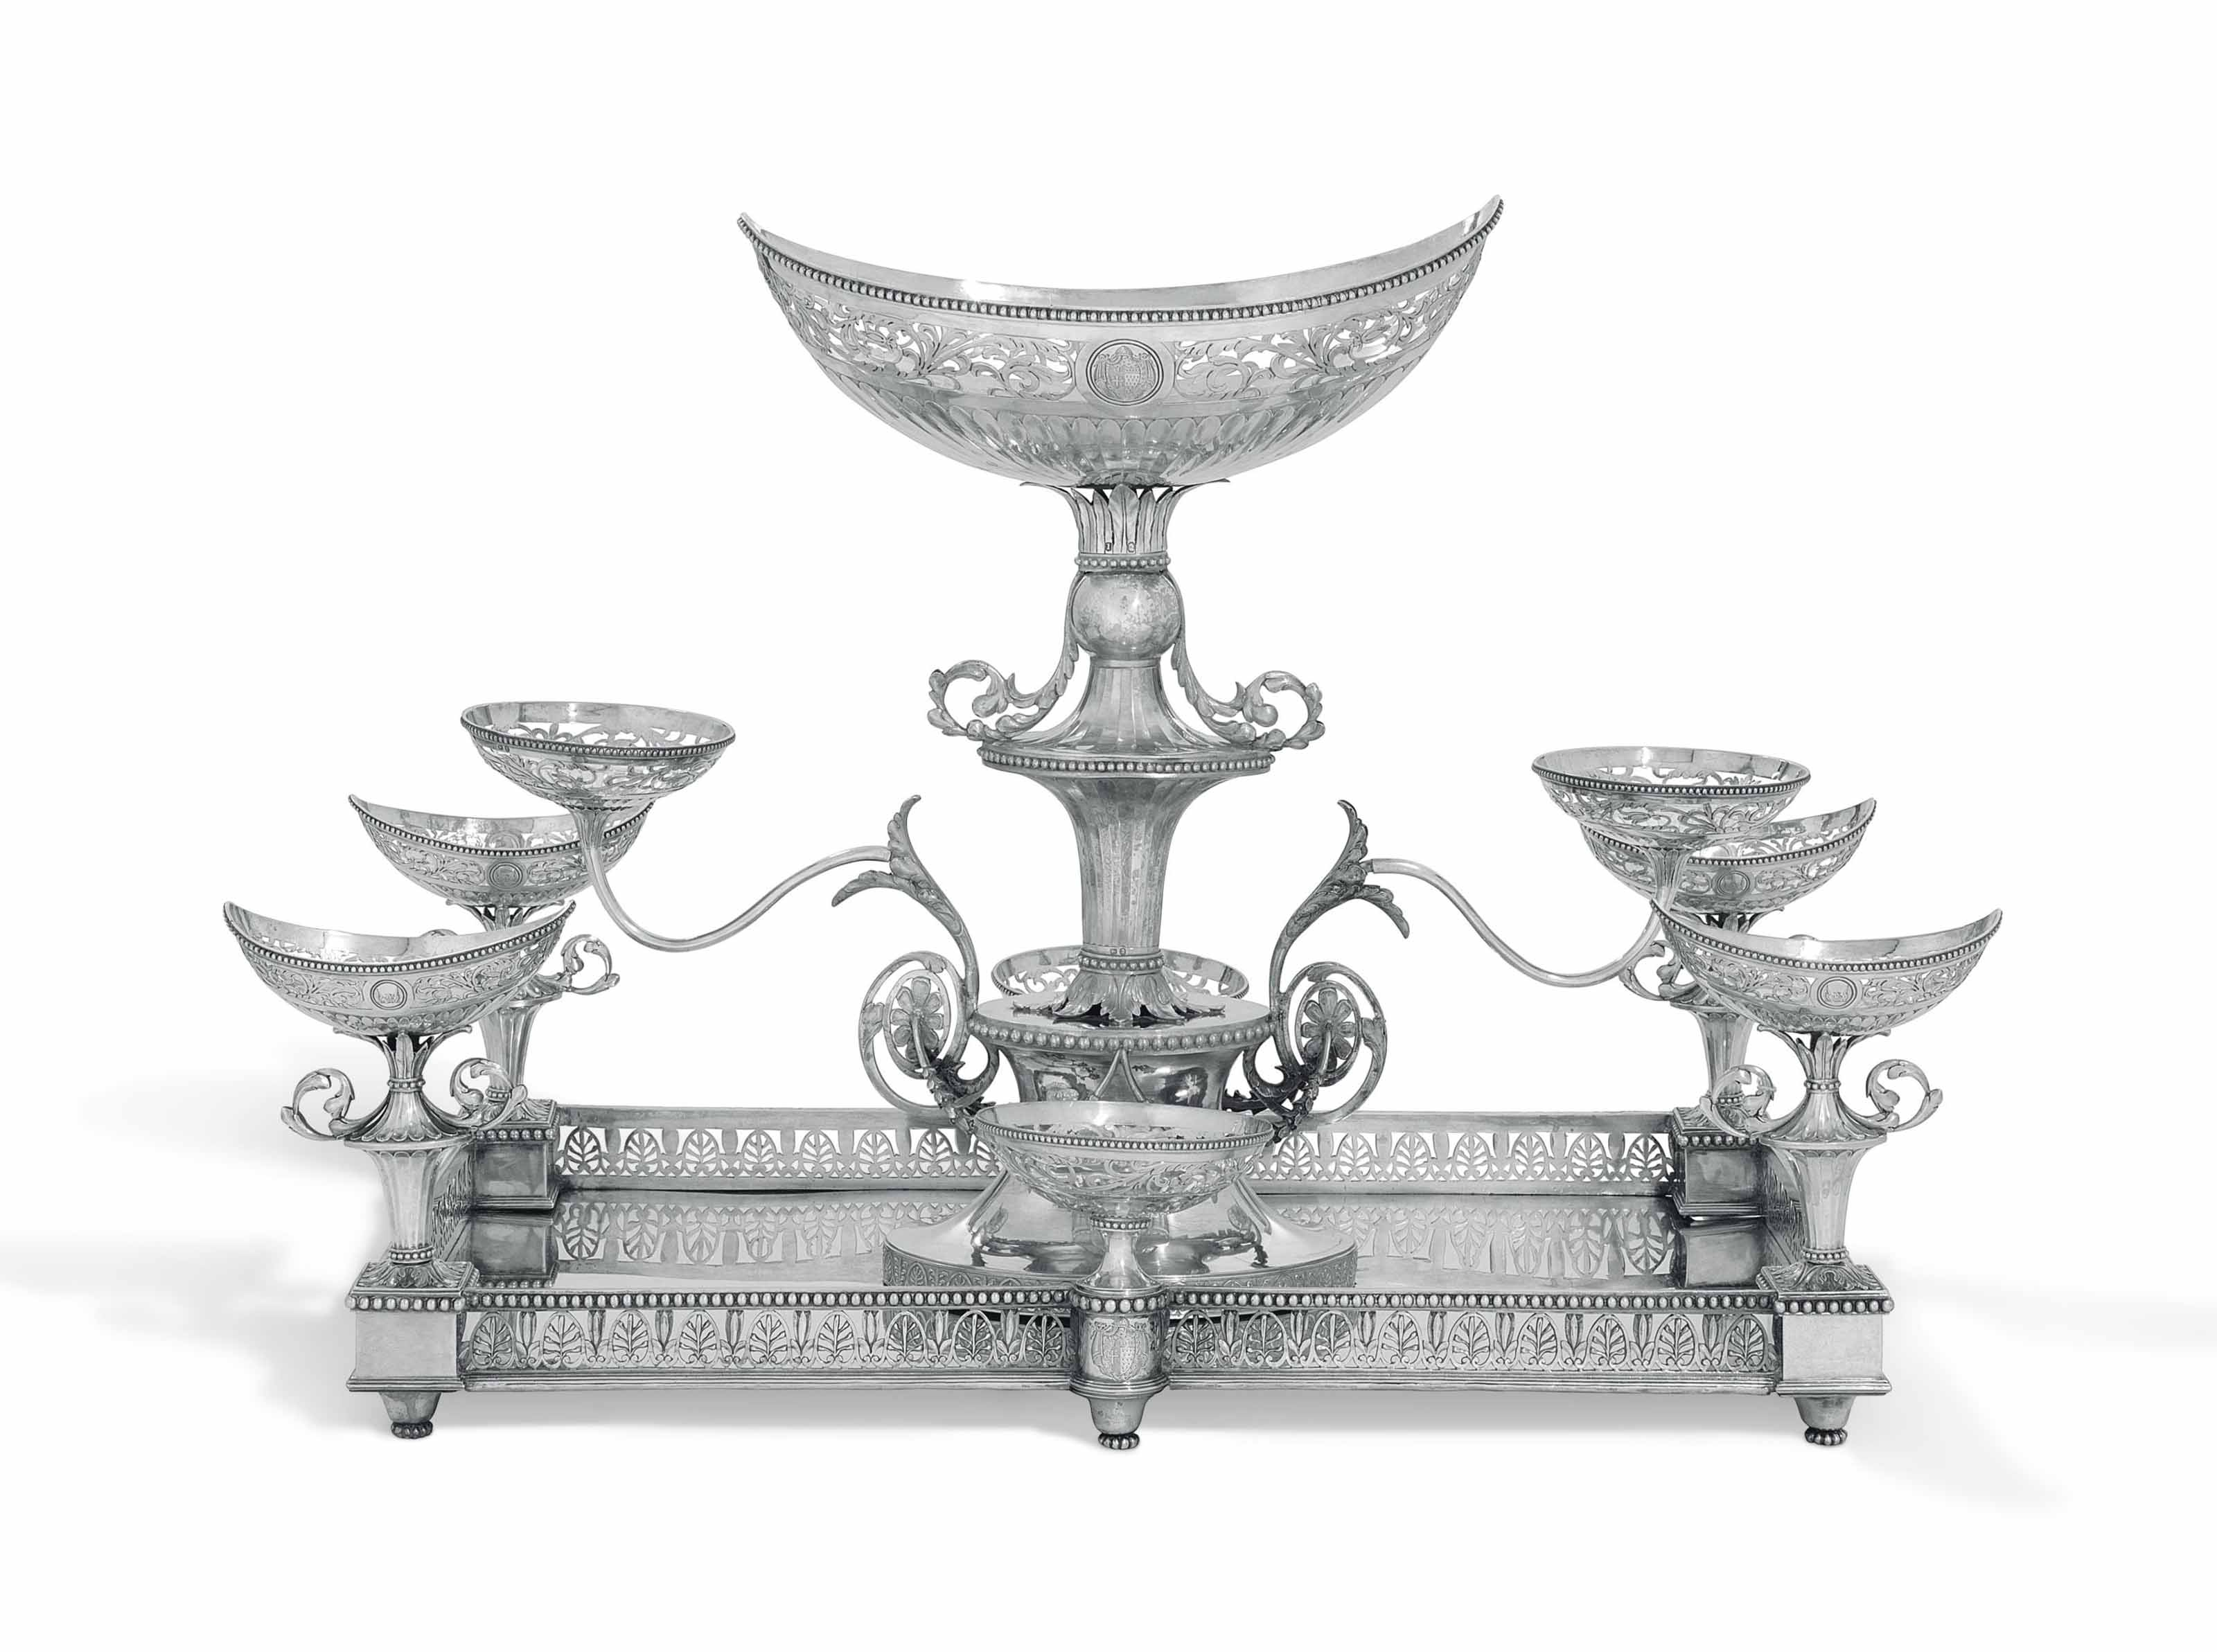 A GEORGE III SILVER EPERGNE CENTREPIECE